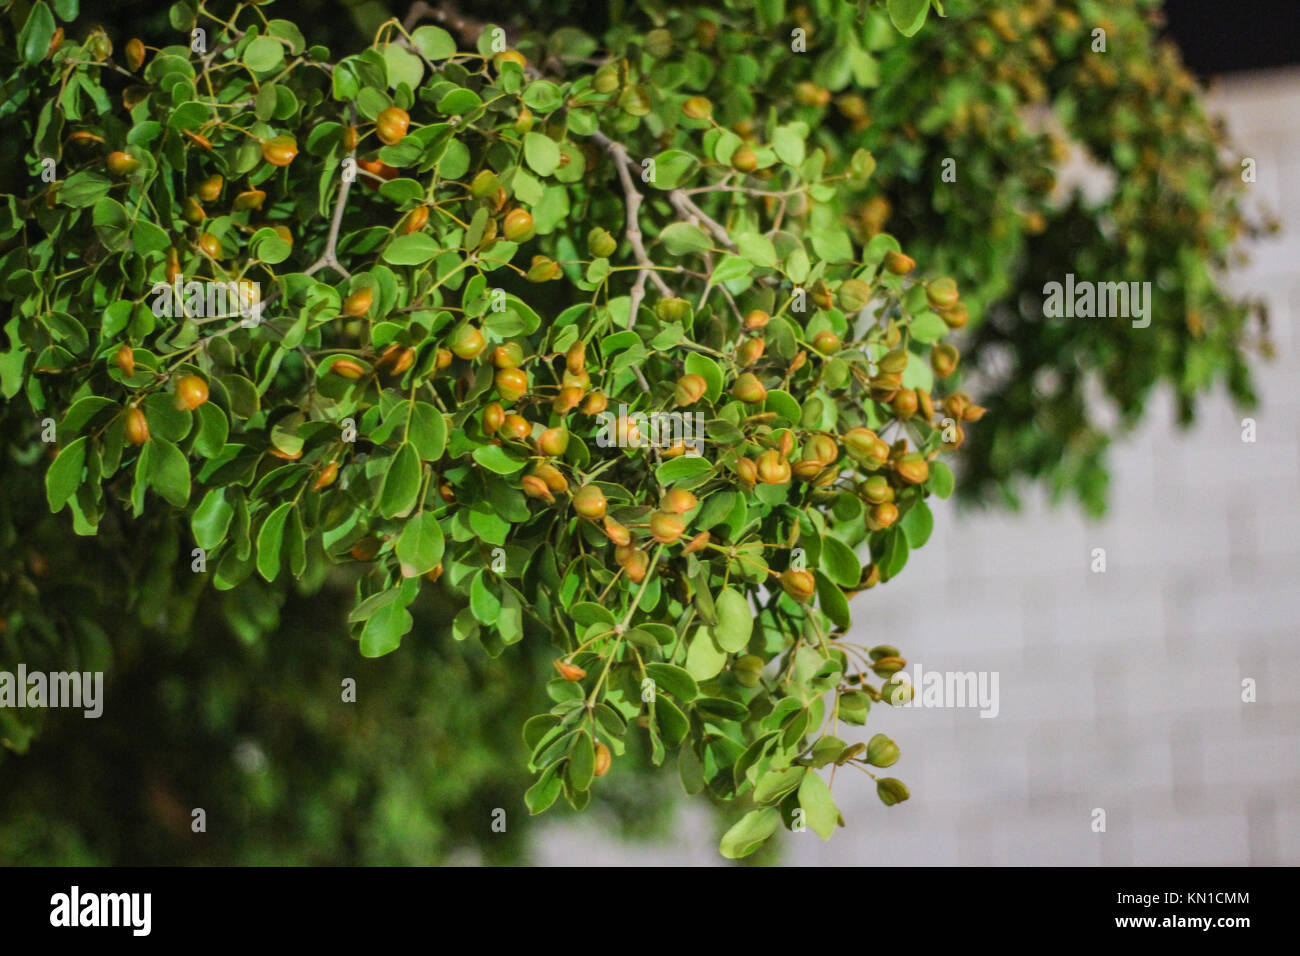 Frankincense leaves used as aromatic resins and wallpapers green leaves on tree having a small baby fruits on it Stock Photo